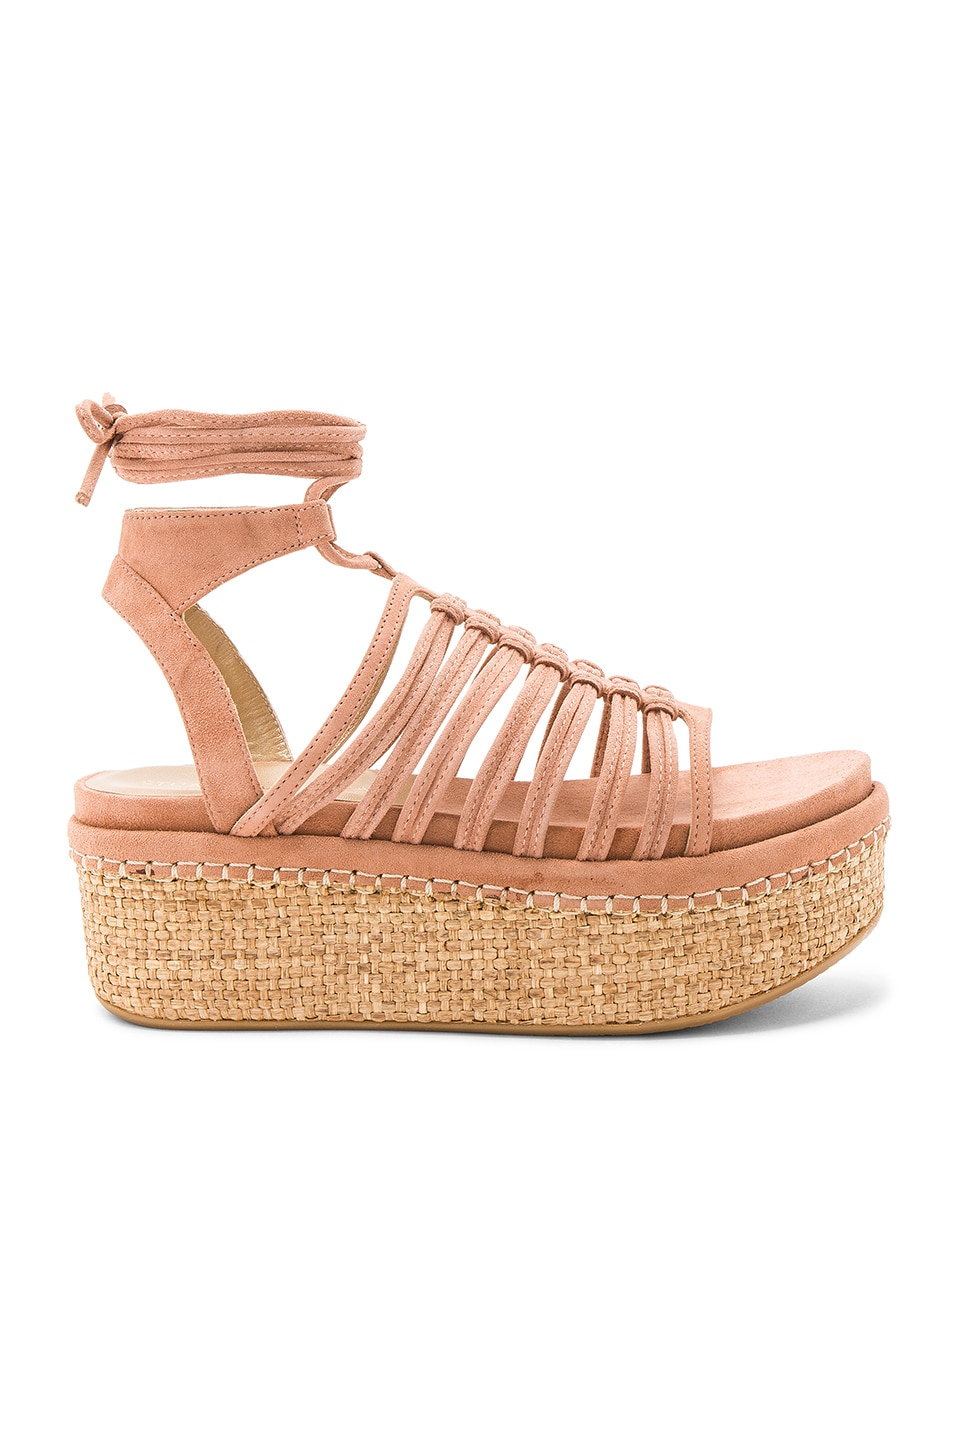 Stuart Weitzman Knotagain Sandal in Naked Suede